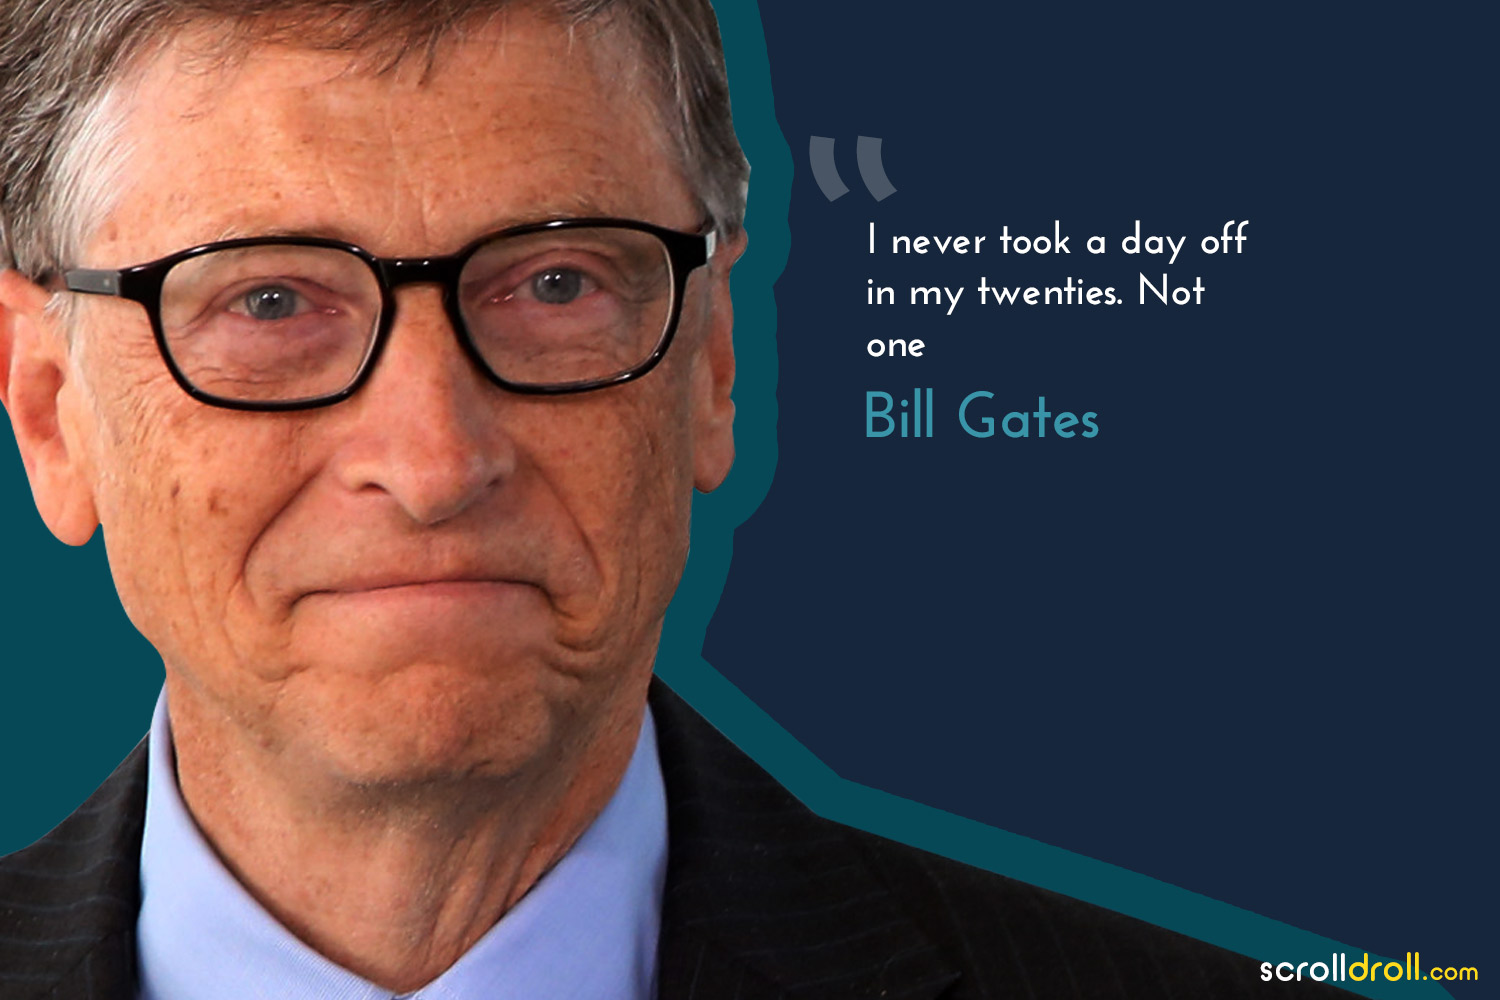 Powerful Quotes By Successful People-quote by bill gates